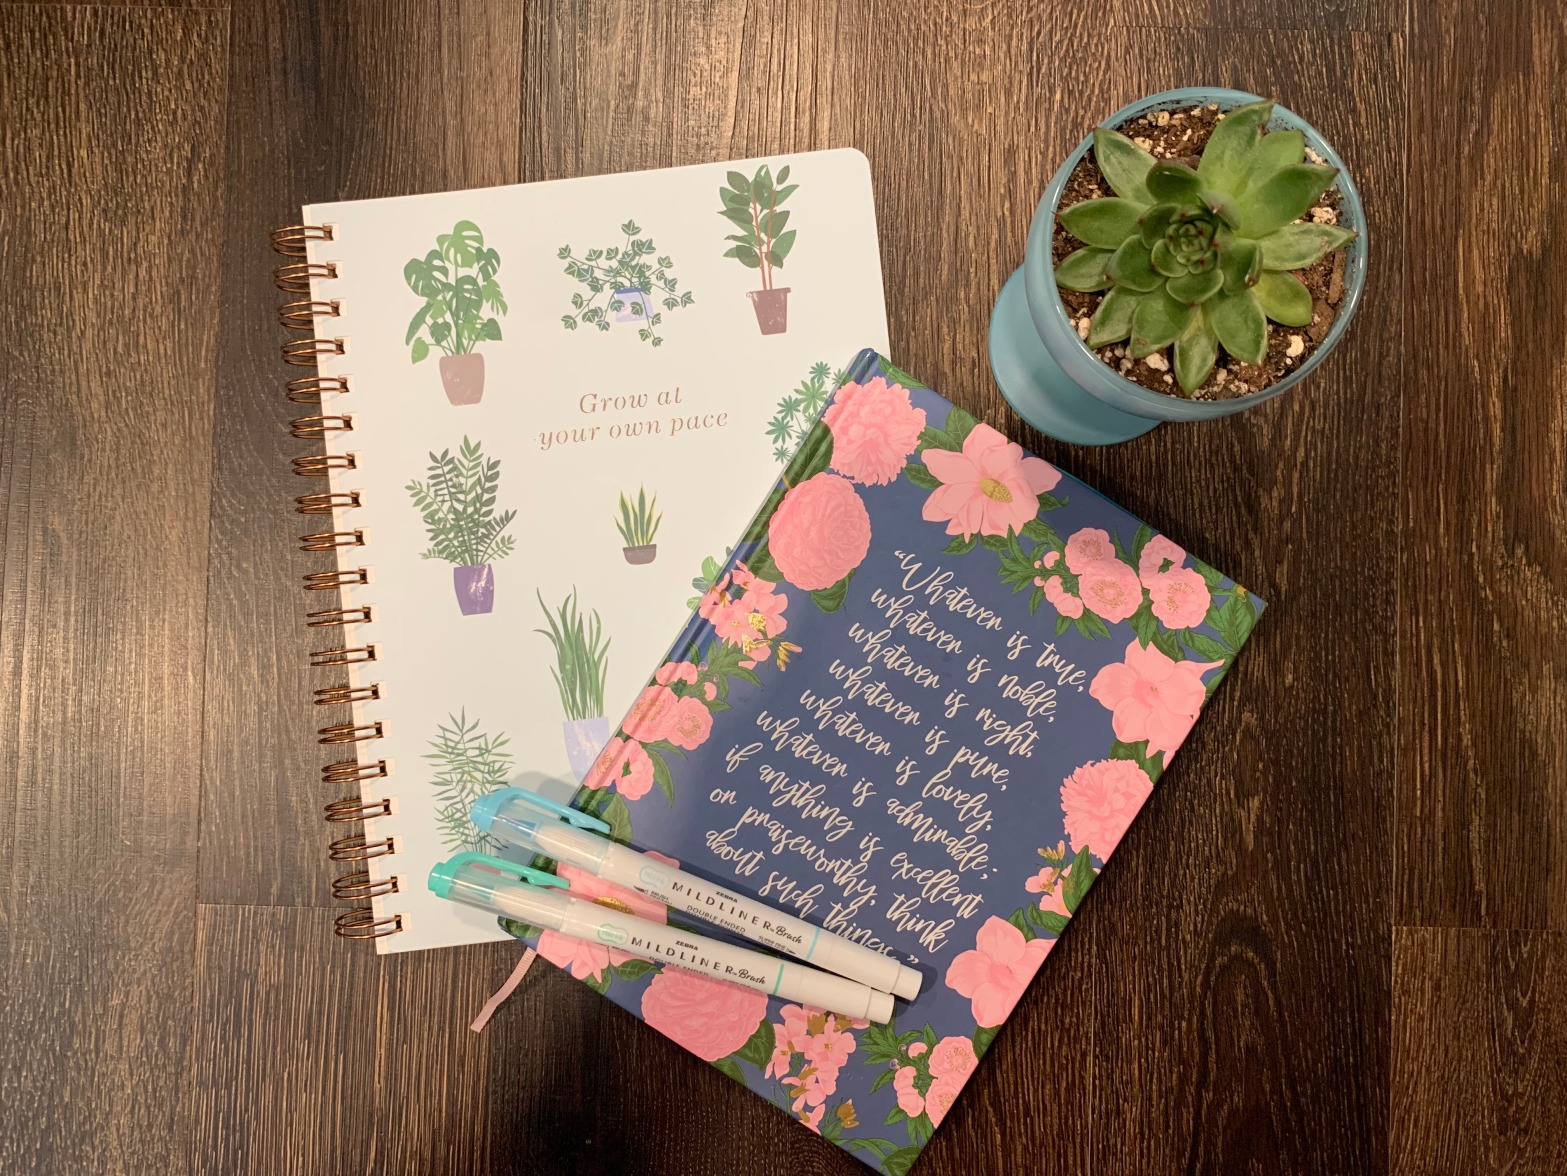 8 Awesome Things to Write in a Prayer Journal